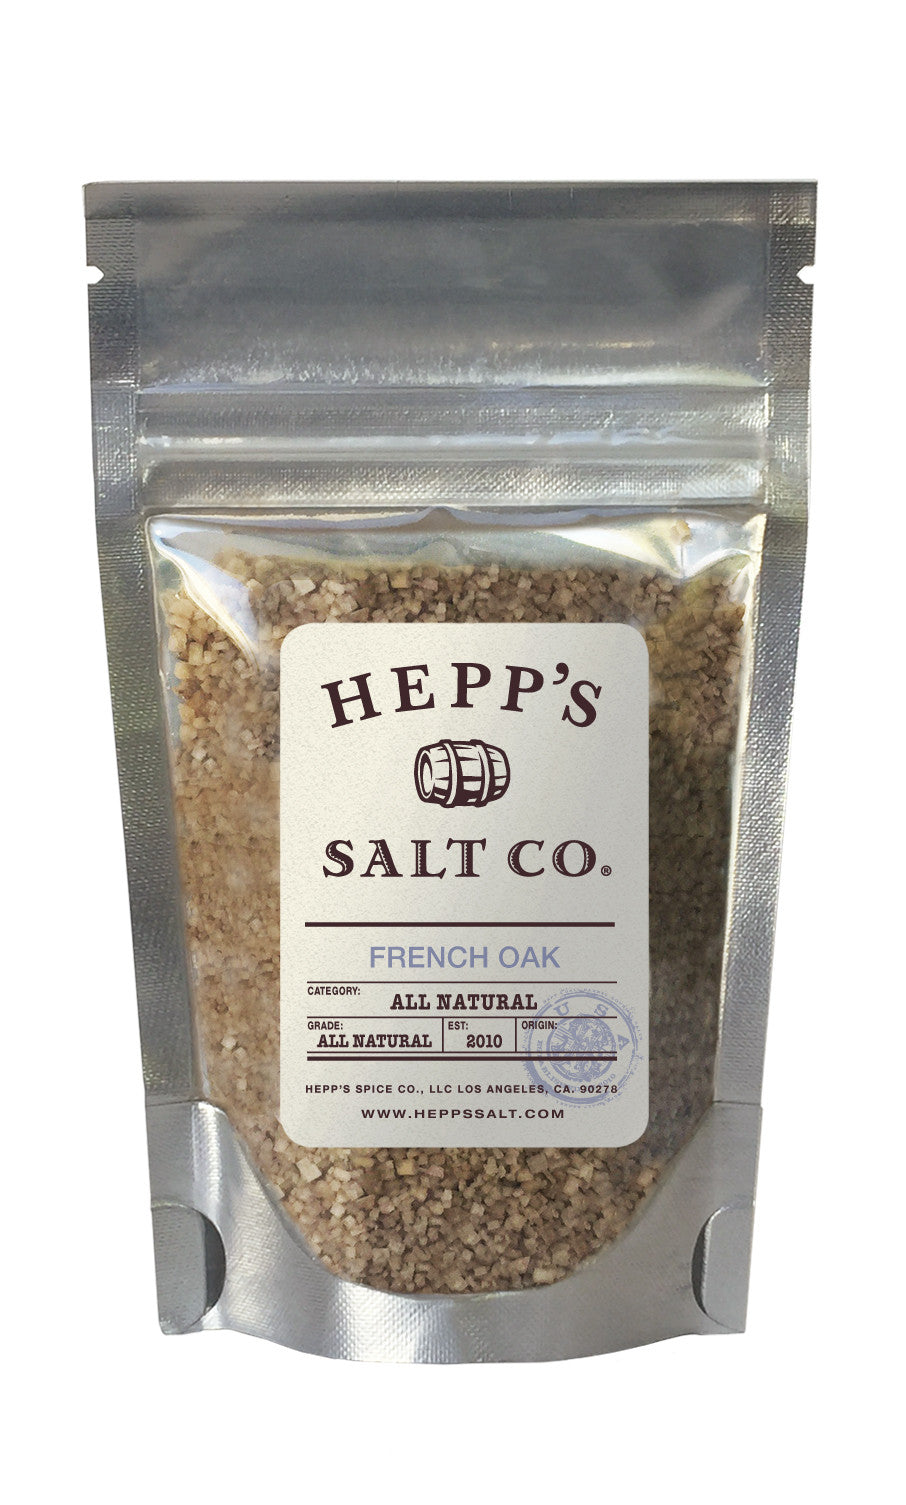 French Oak Smoked Sea Salt - HEPPS SALT CO.